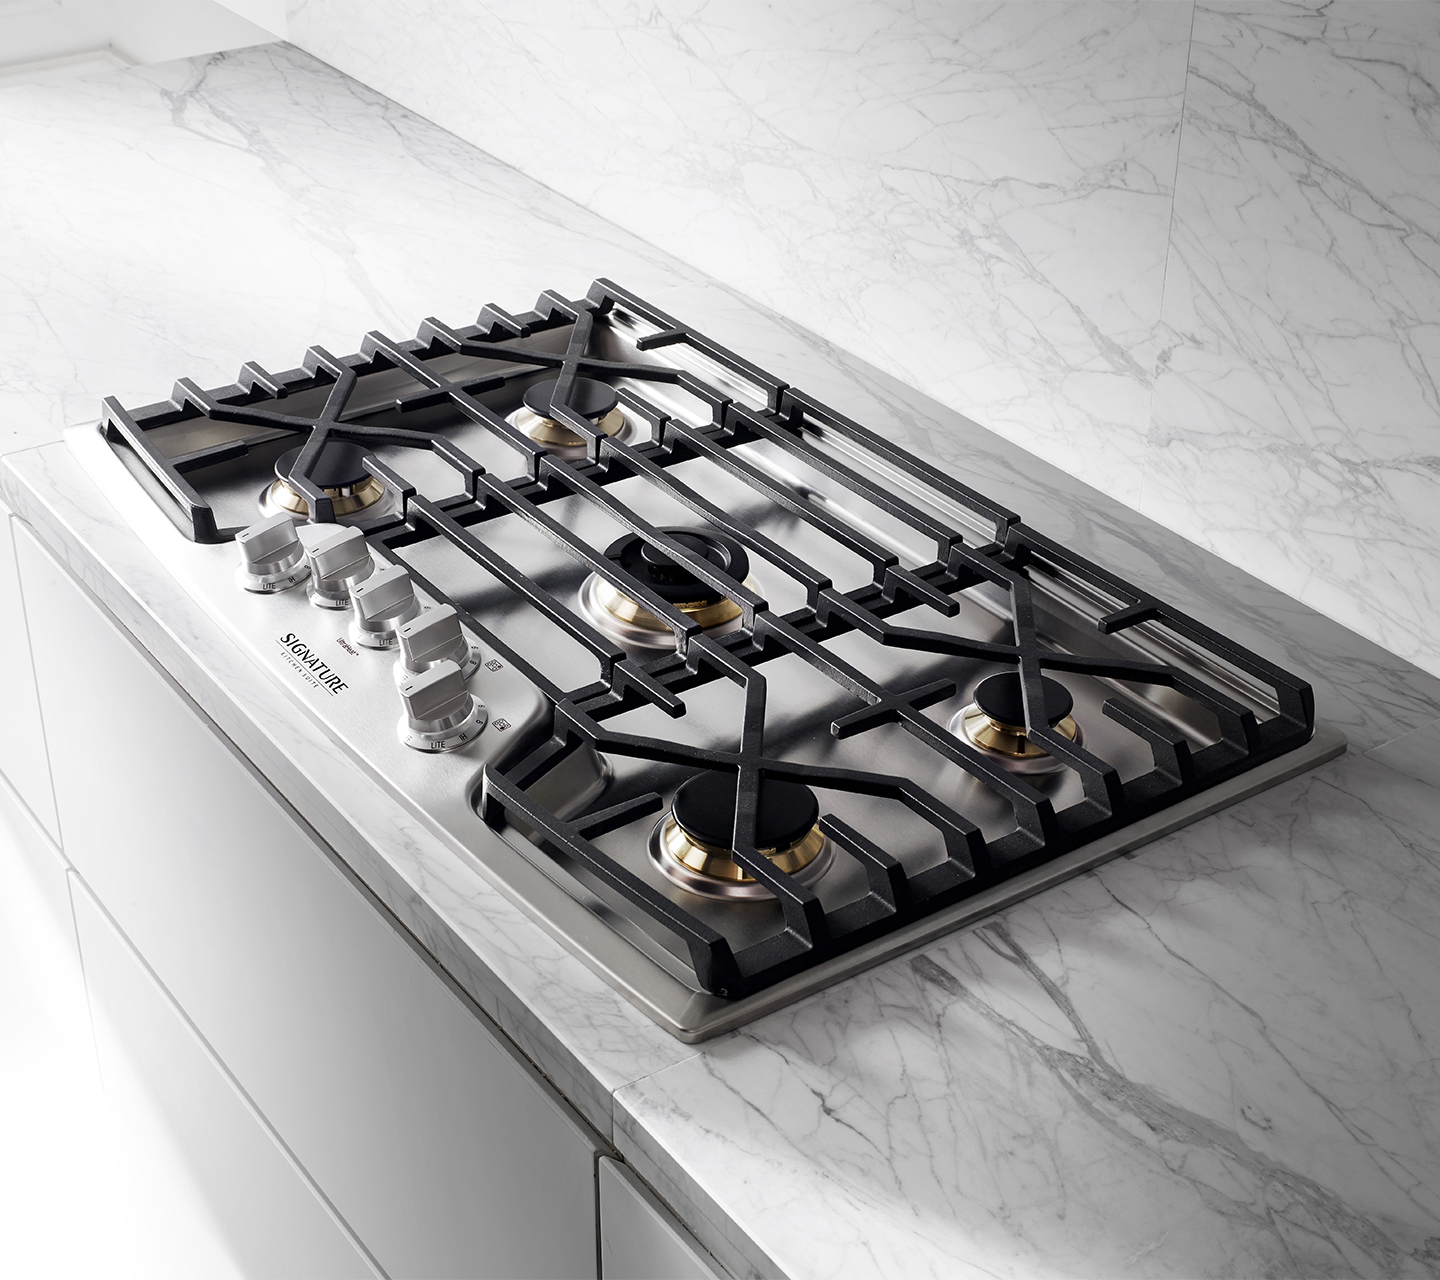 30-inch Gas Cooktop Cast Iron Grates from Signature Kitchen Suite